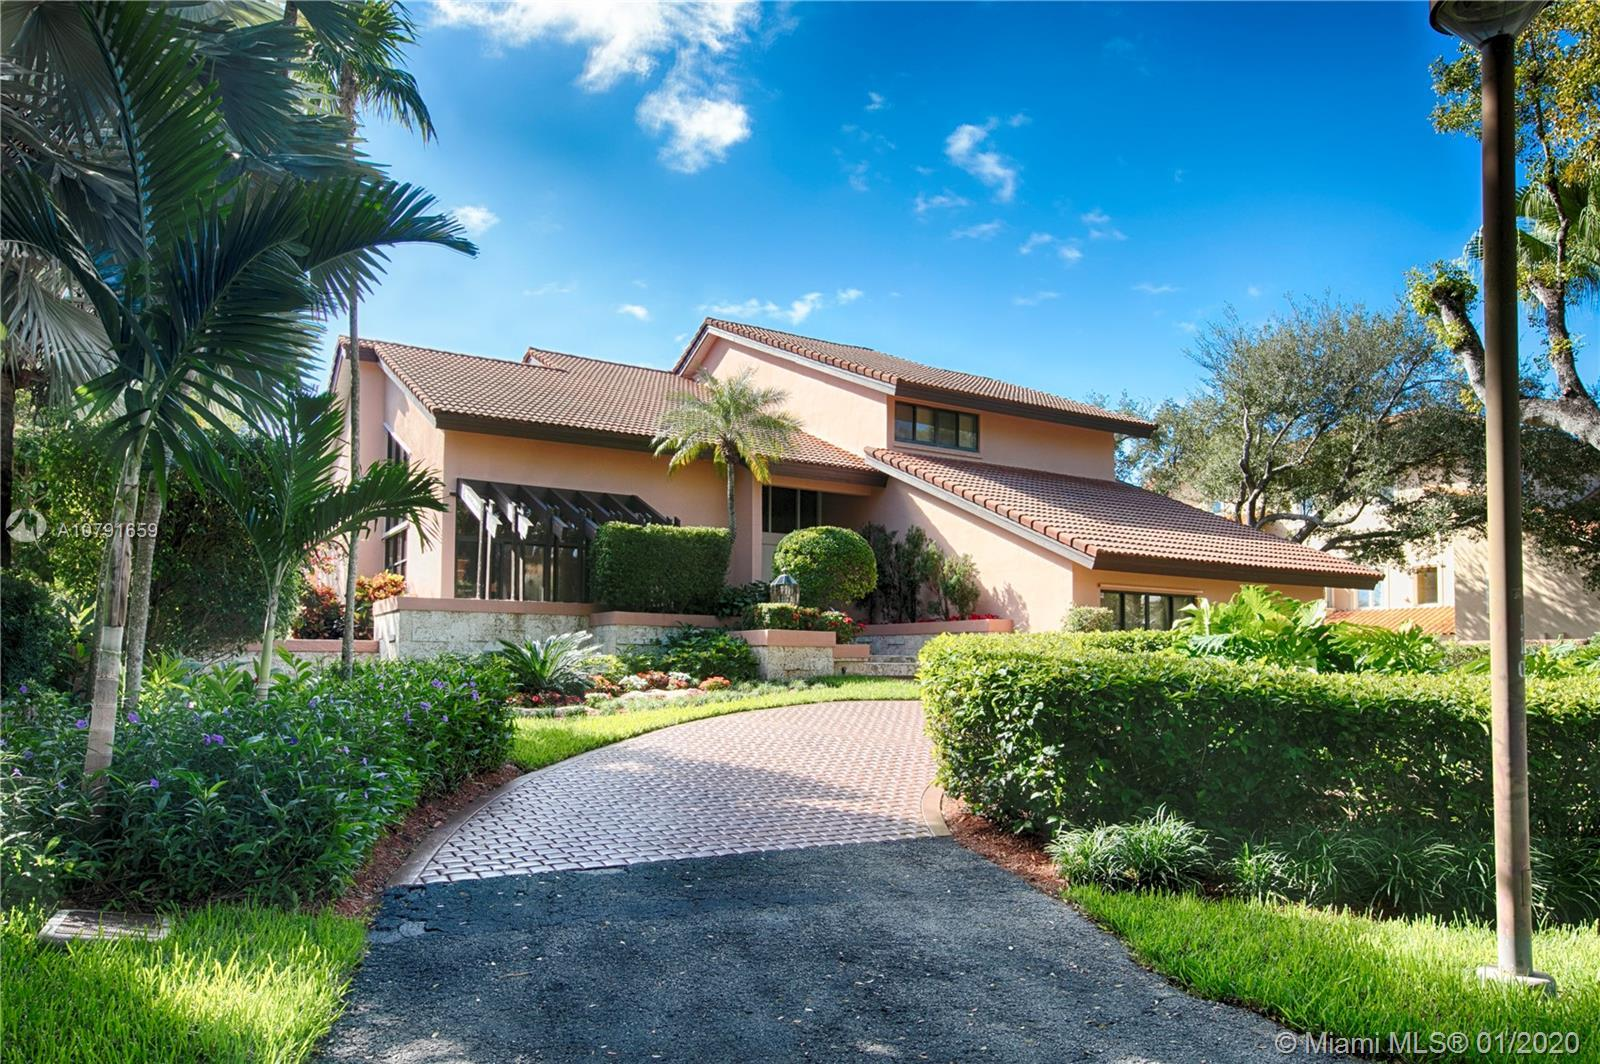 Waterfront 2-story in Islands of Cocoplum. Circular driveway & beautiful landscaping leads to front